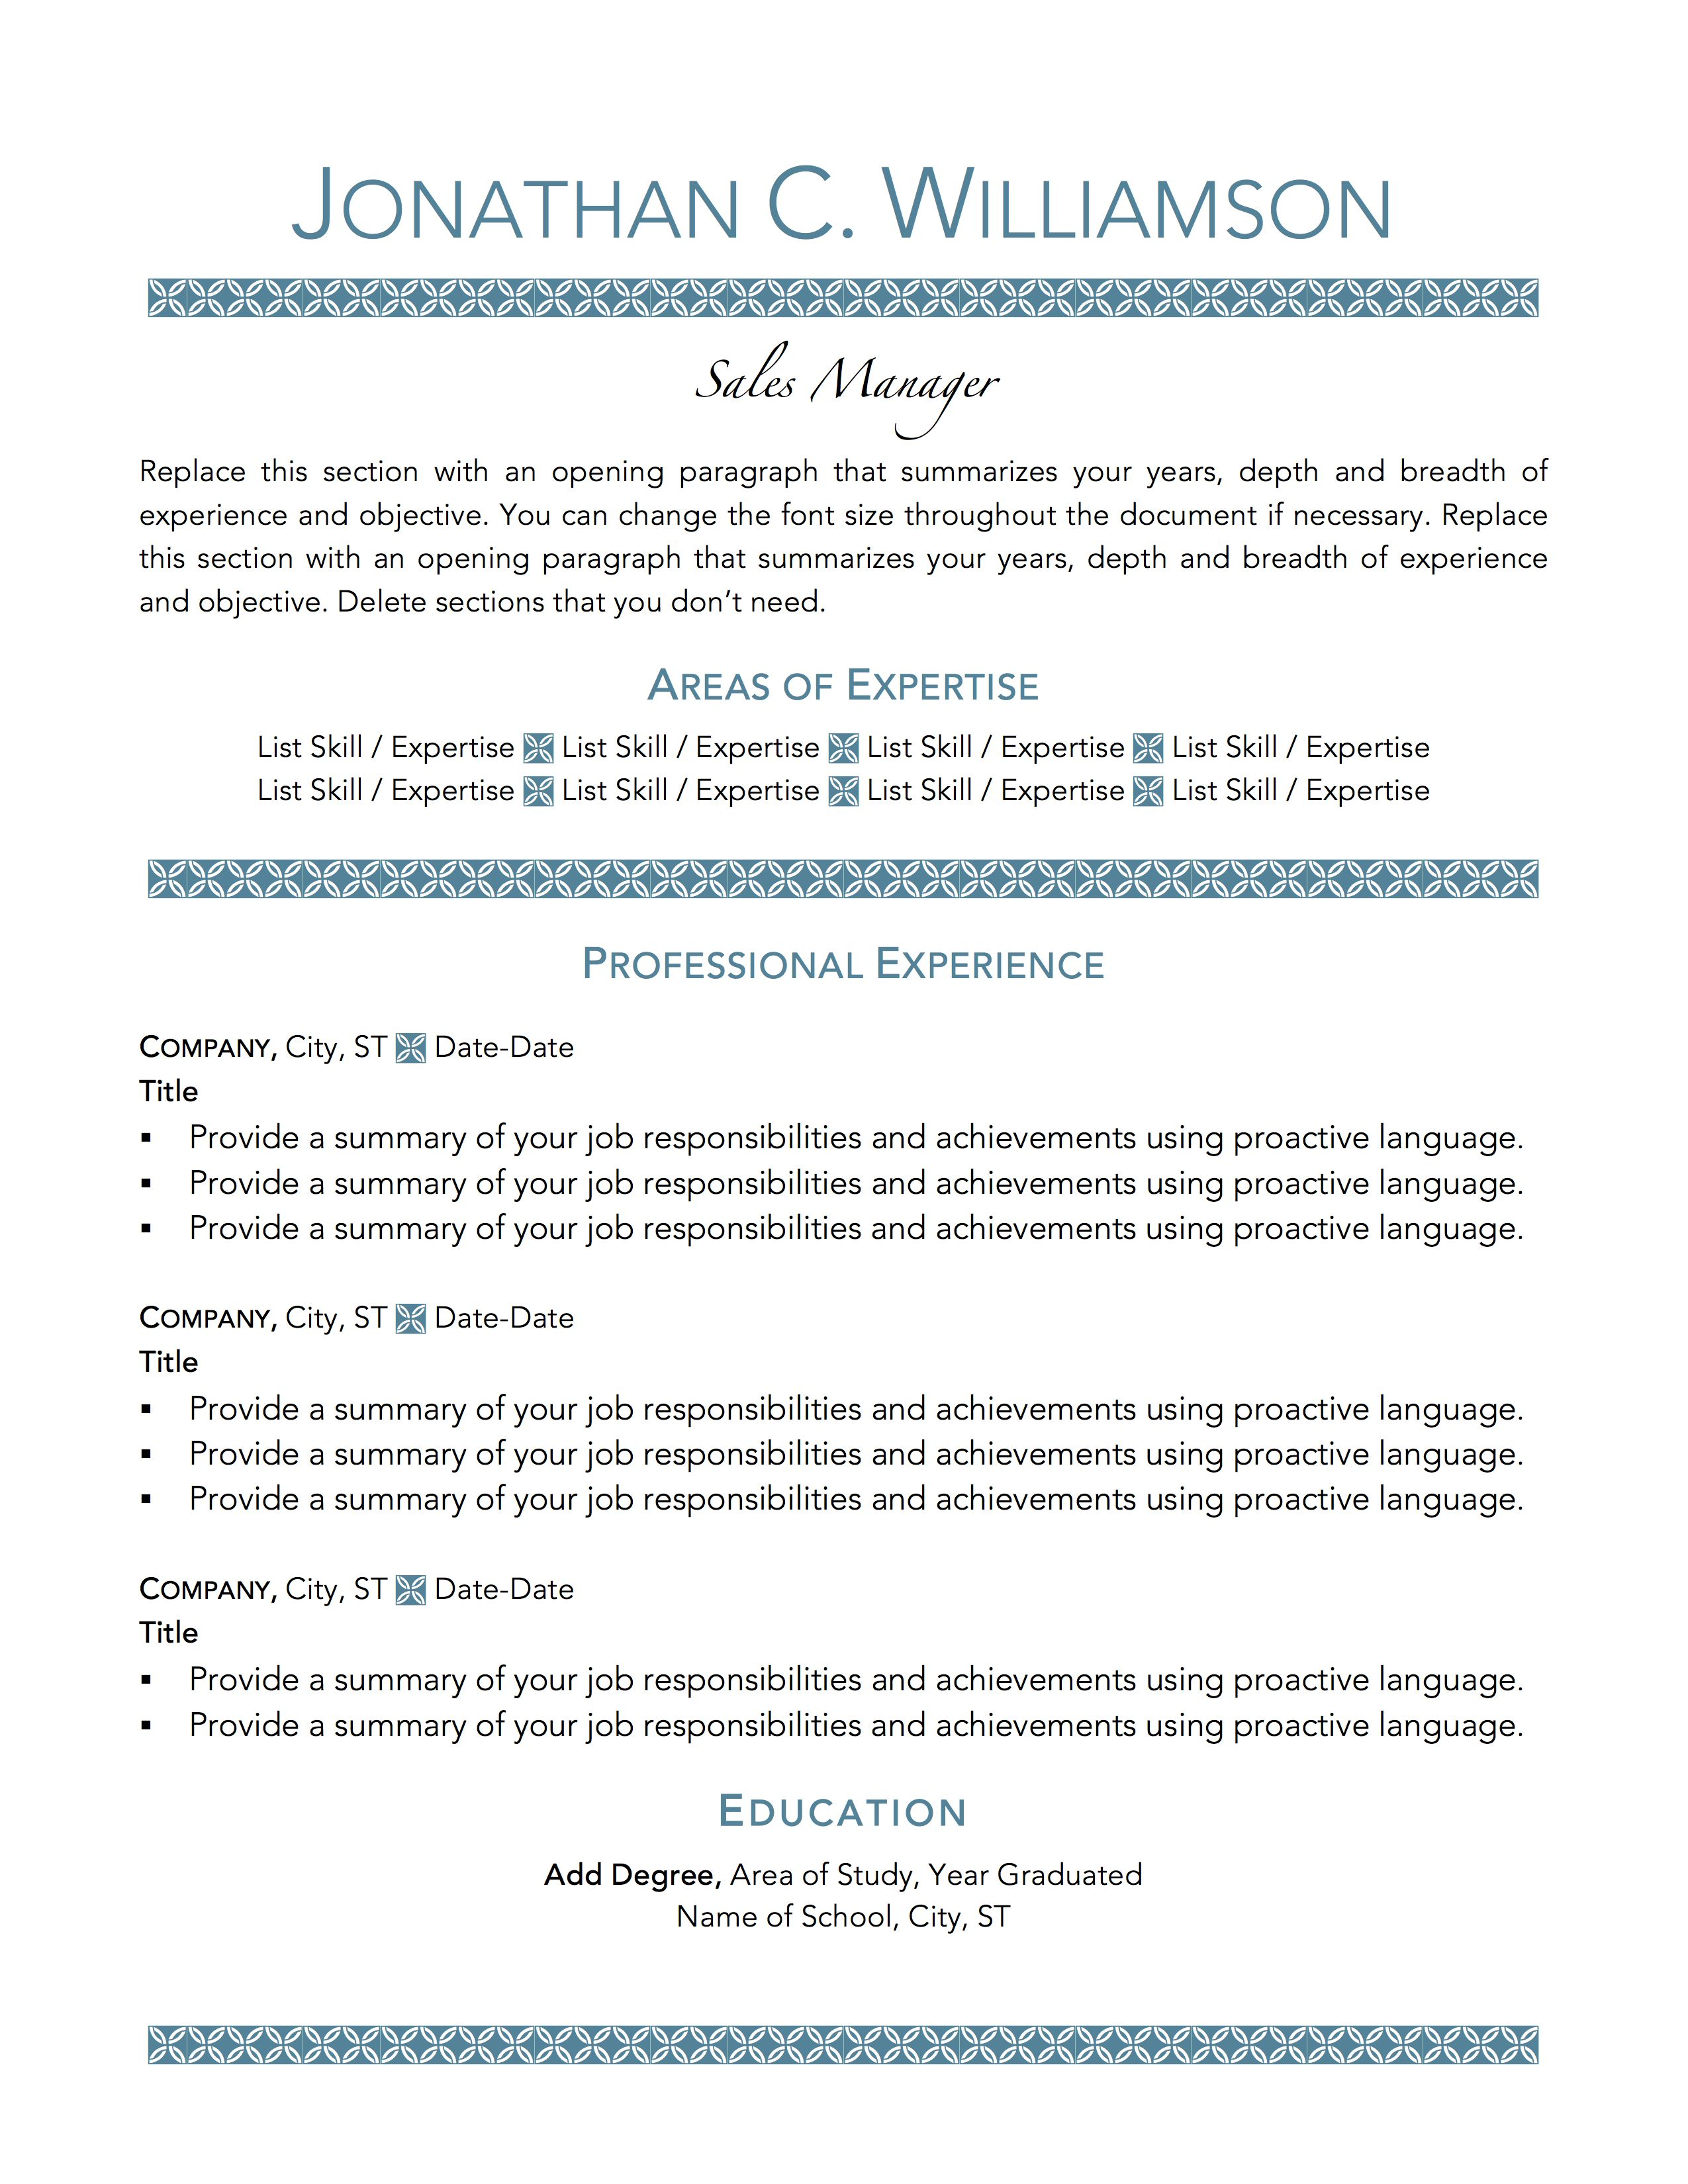 Prepared To Win Resumes Resume writing services, Resume